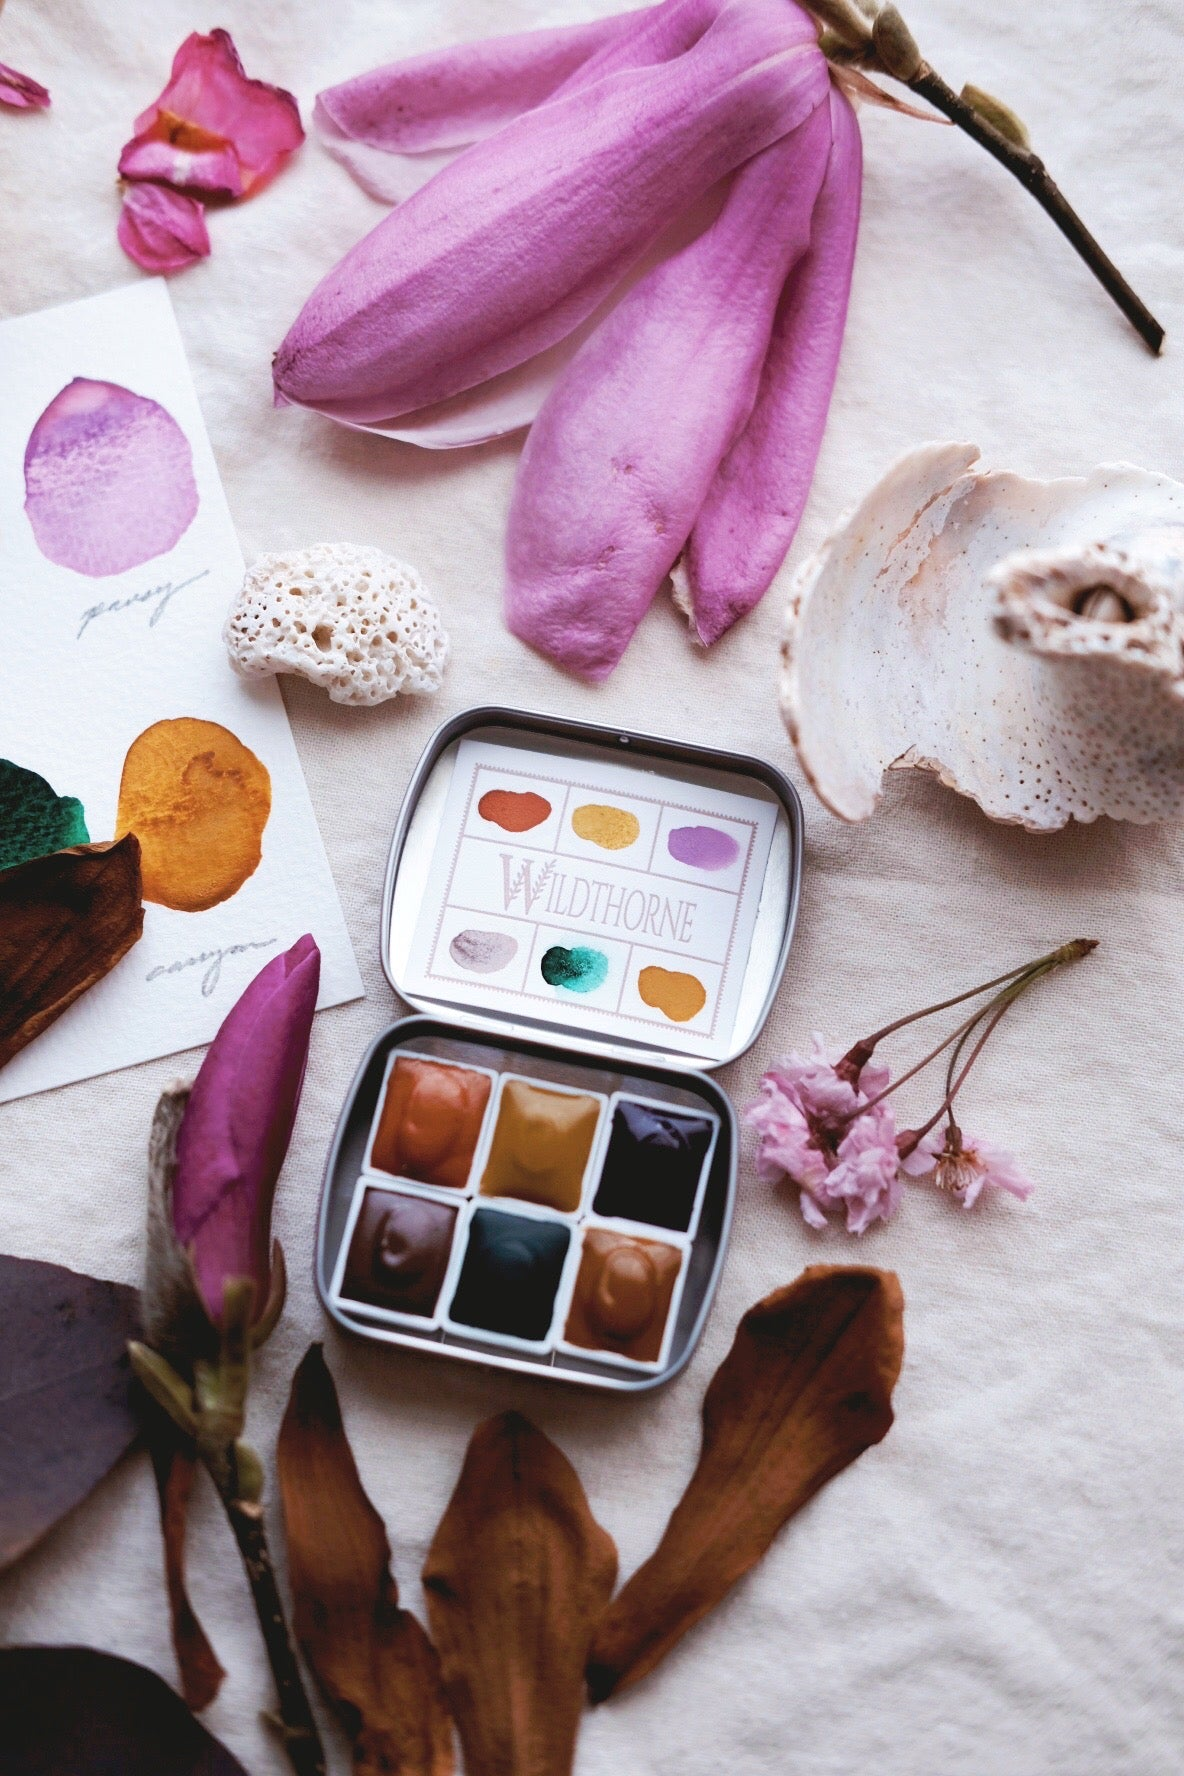 RESERVE for Heidi + Storyteller + Magnolia custom Limited edition Gemstone Mineral watercolor palette